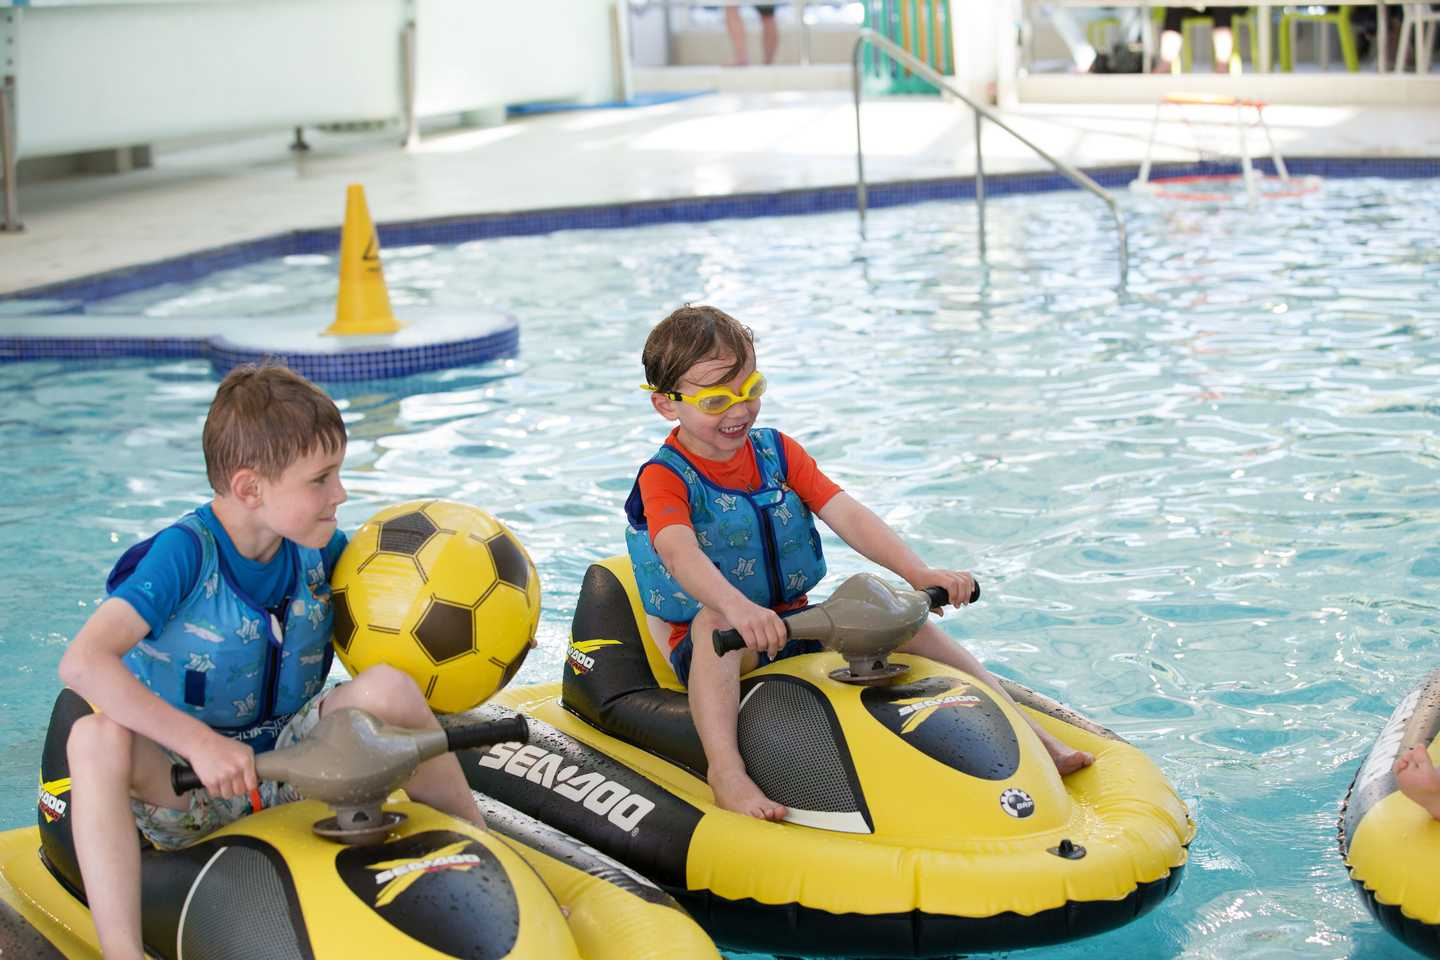 Children navigating the pool on Aqua Gliders